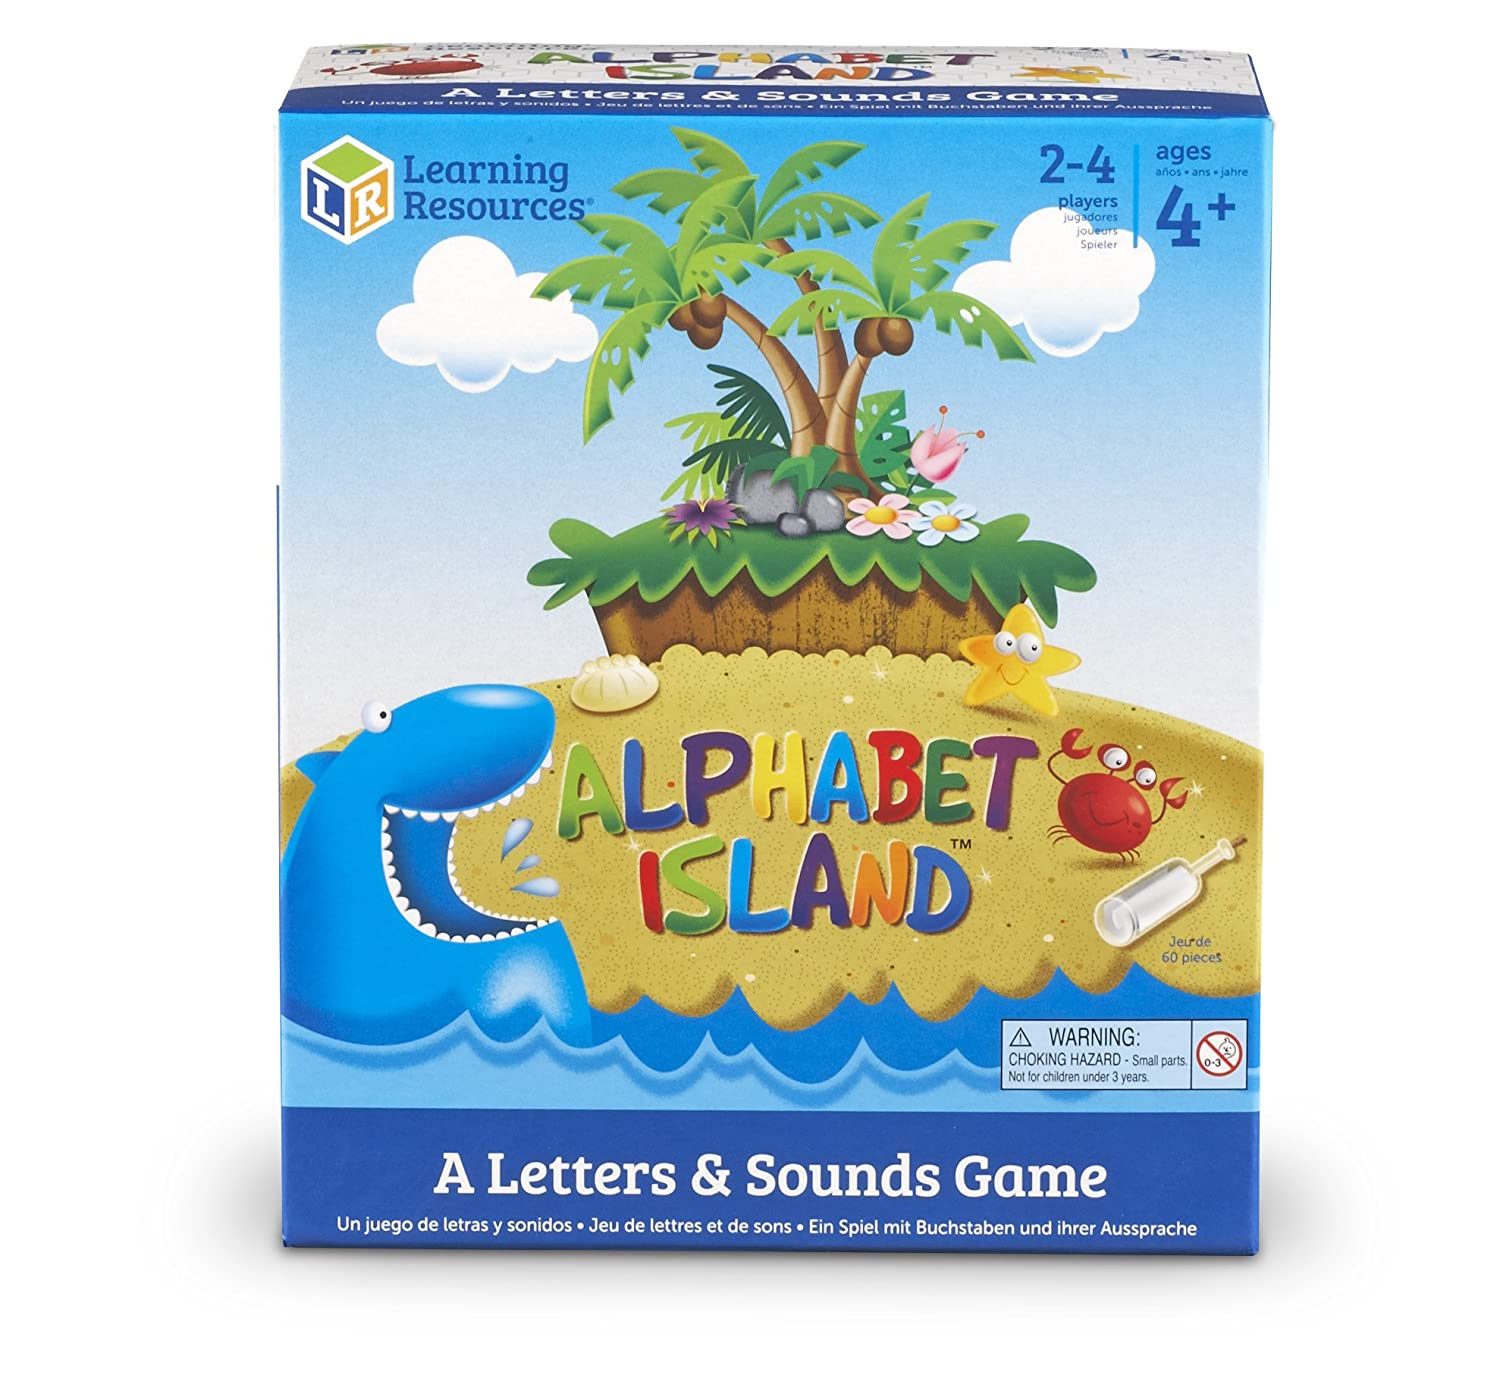 Amazon.com: Learning Resources Alphabet Island A Letter & Sounds ...